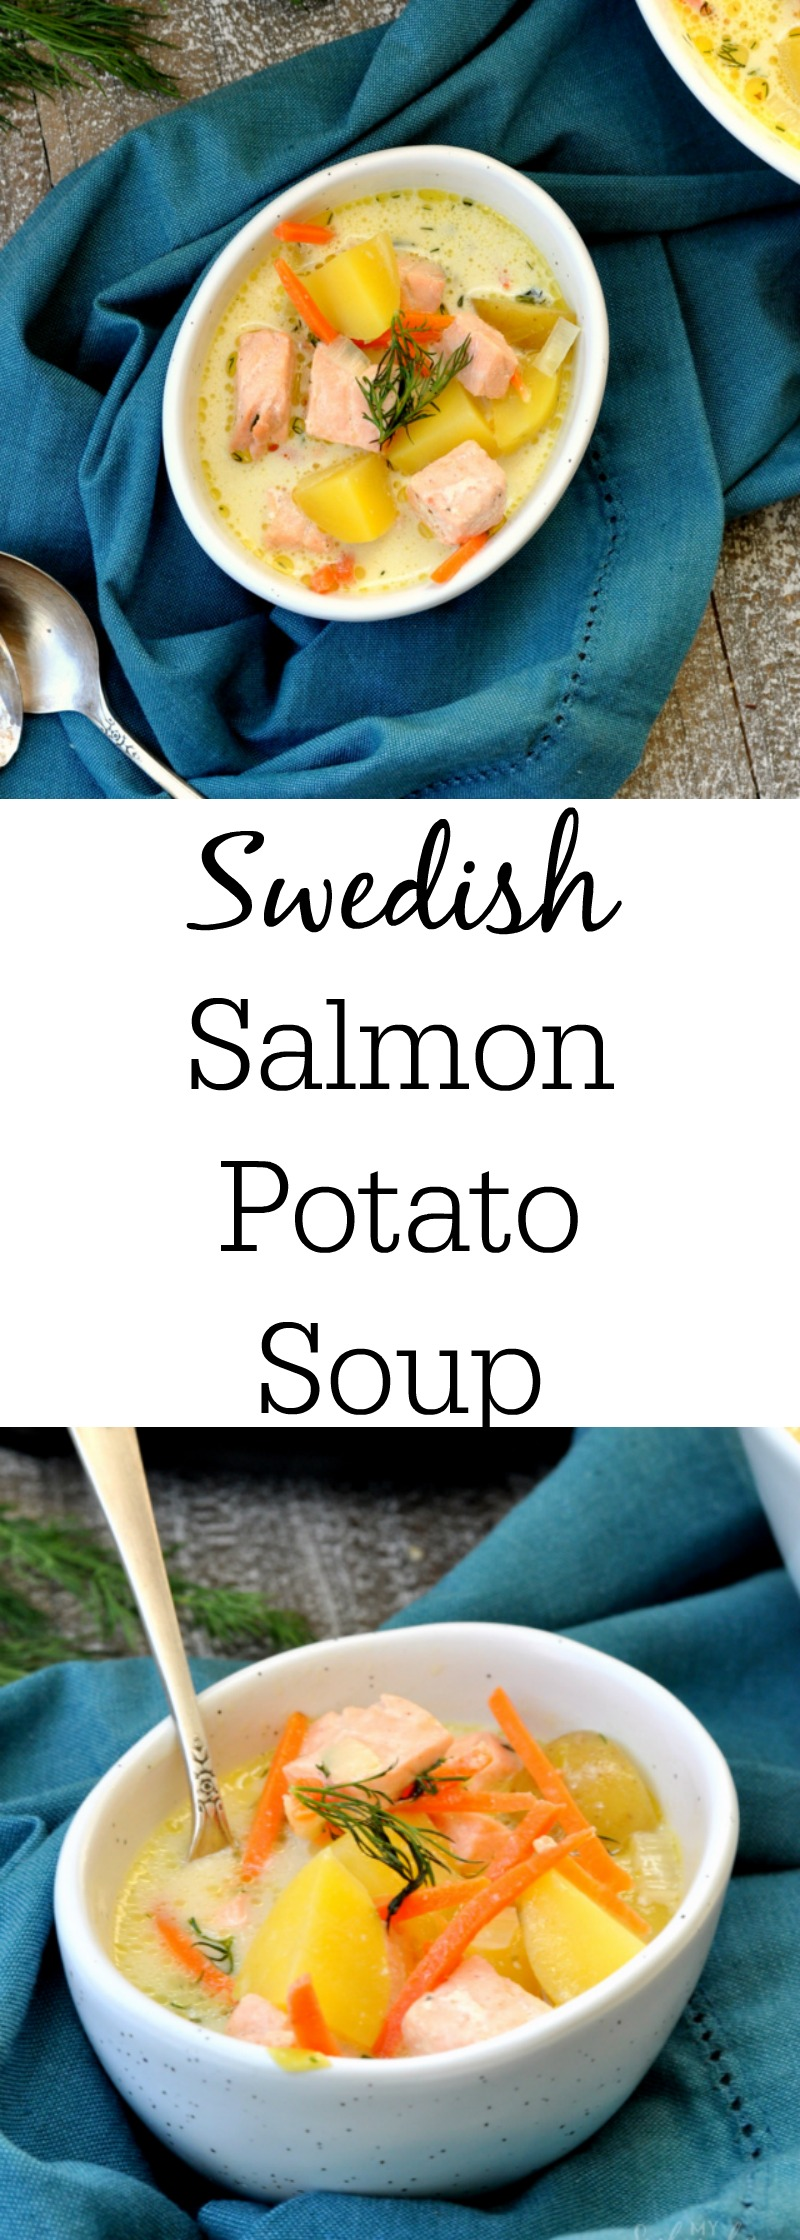 Swedish Salmon Potato Soup